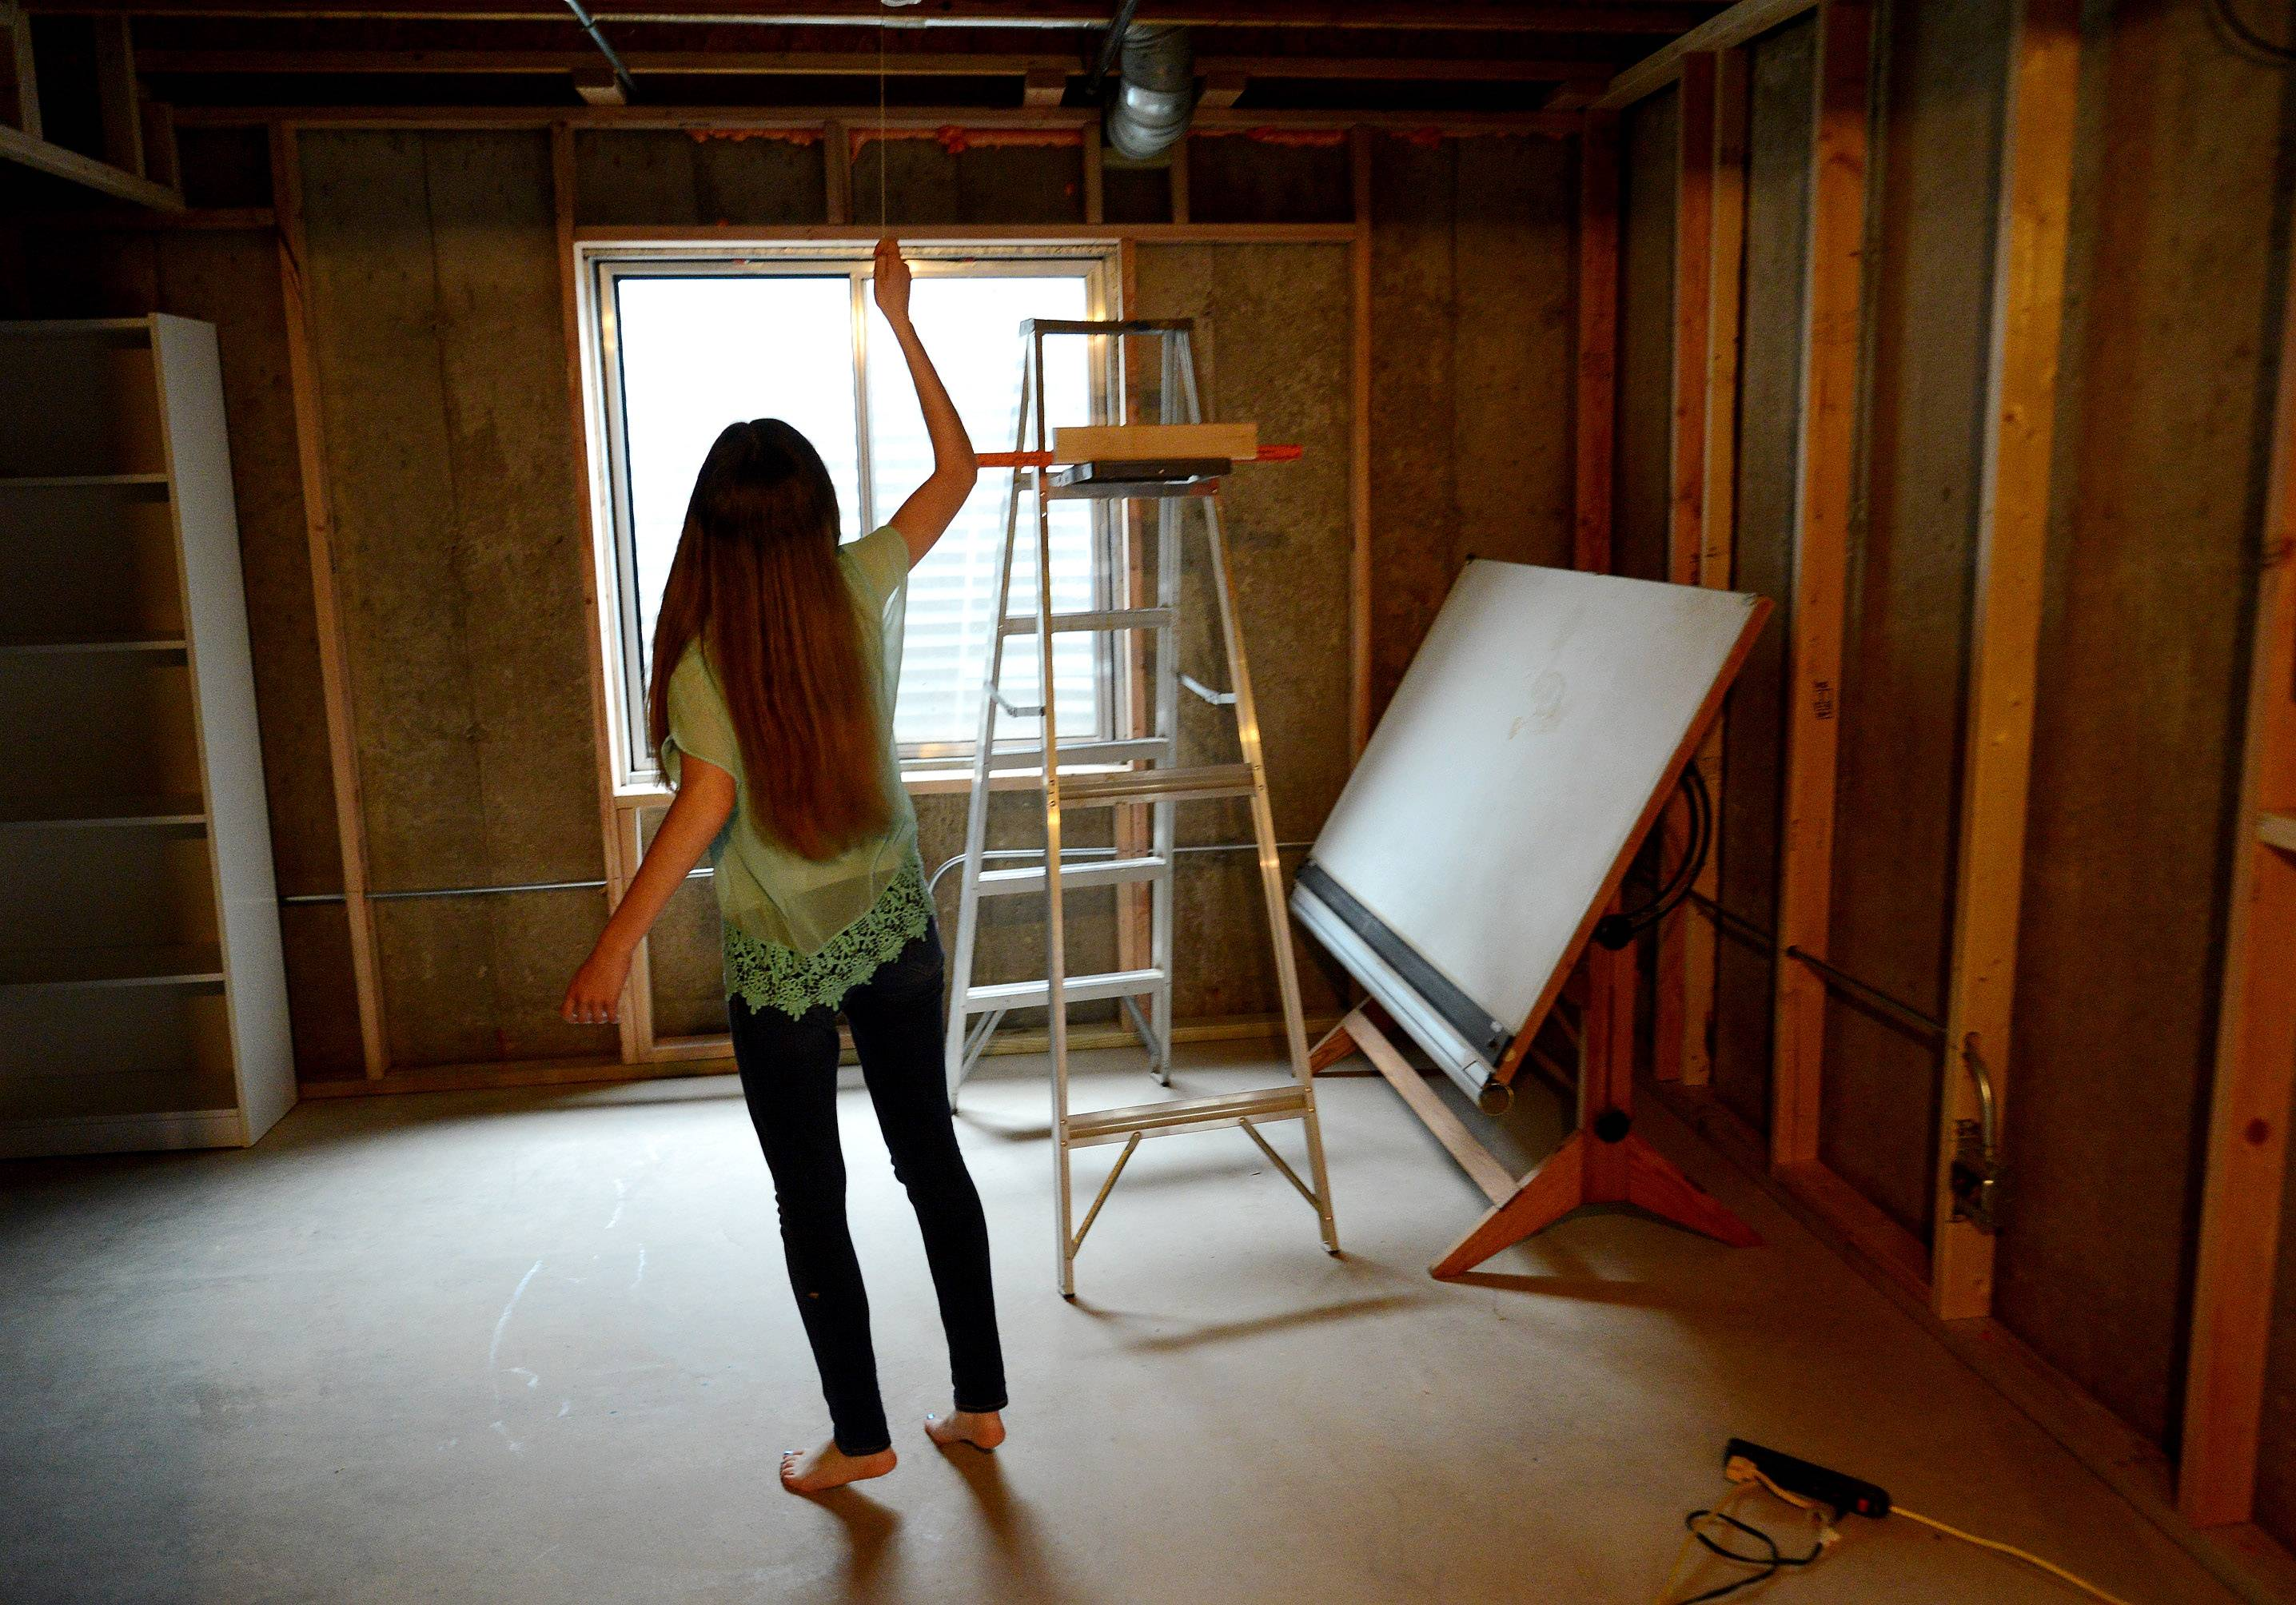 Sydney Janda, an eighth-grader at Milburn Middle School, turns on the light in what will be a studio in the family basement.